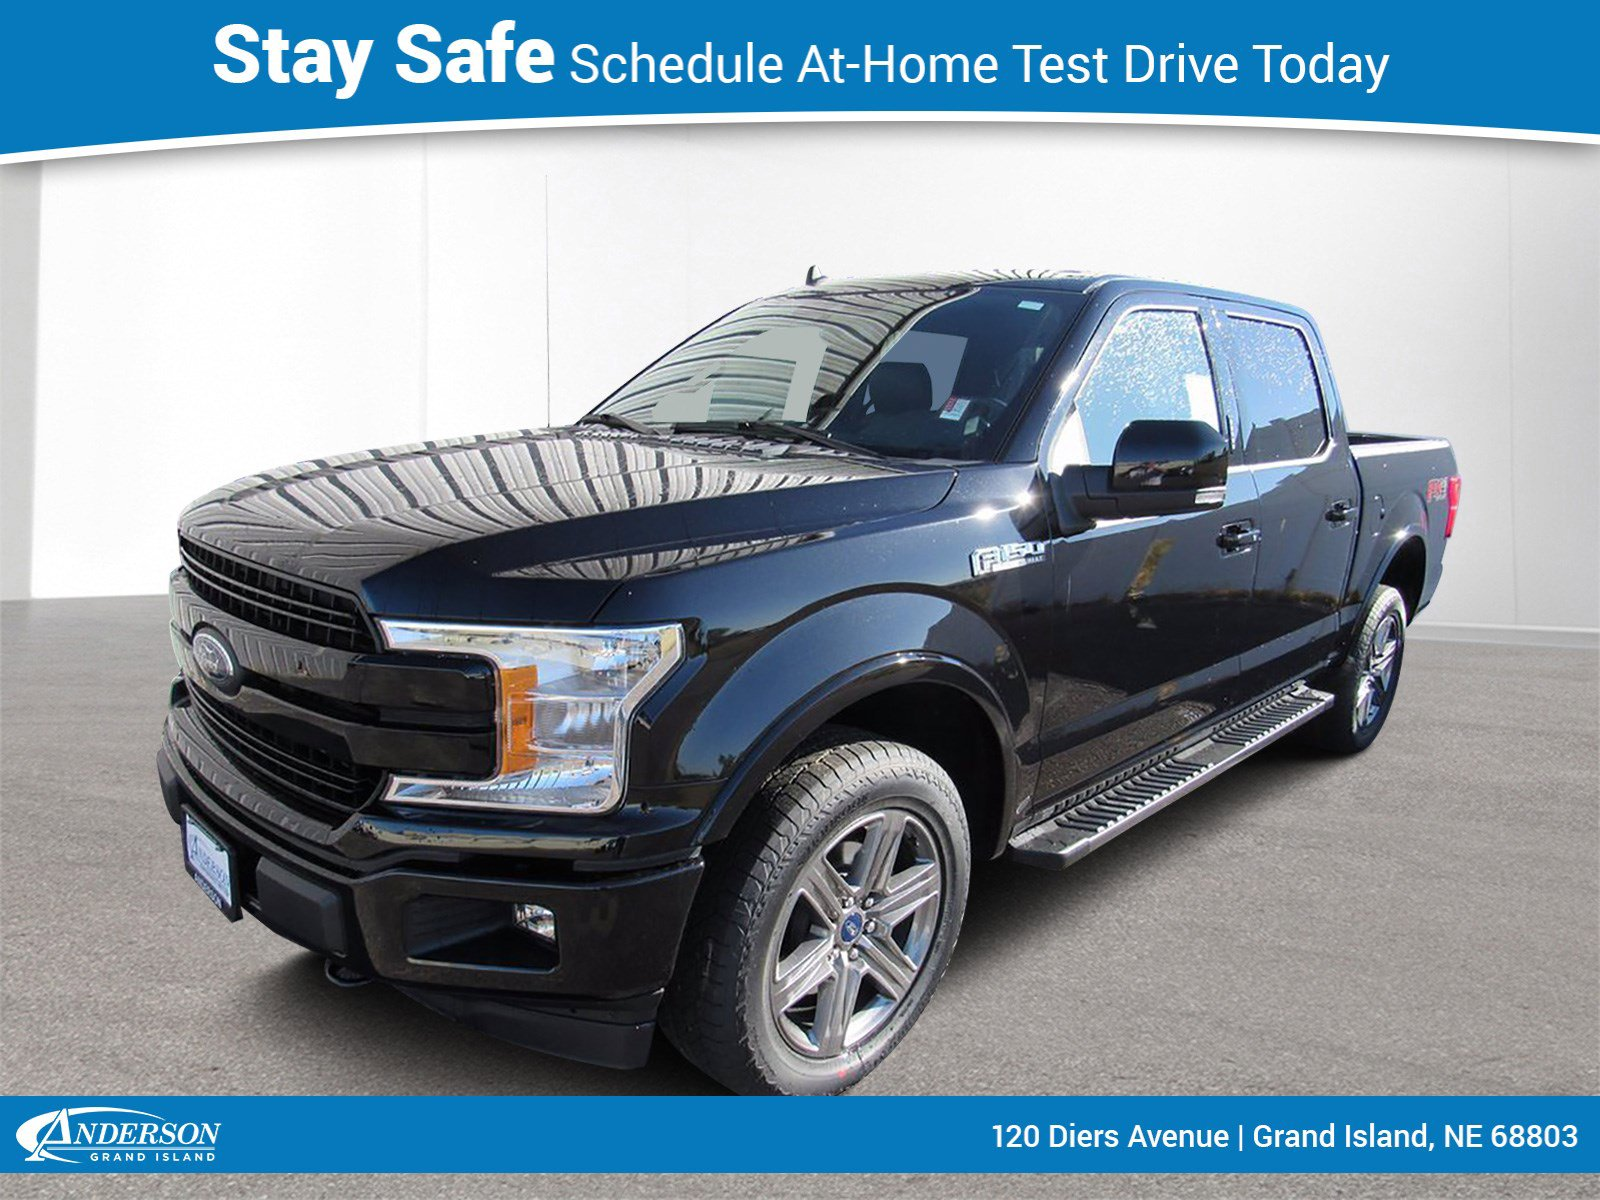 New 2020 Ford F-150  Stock: G13973